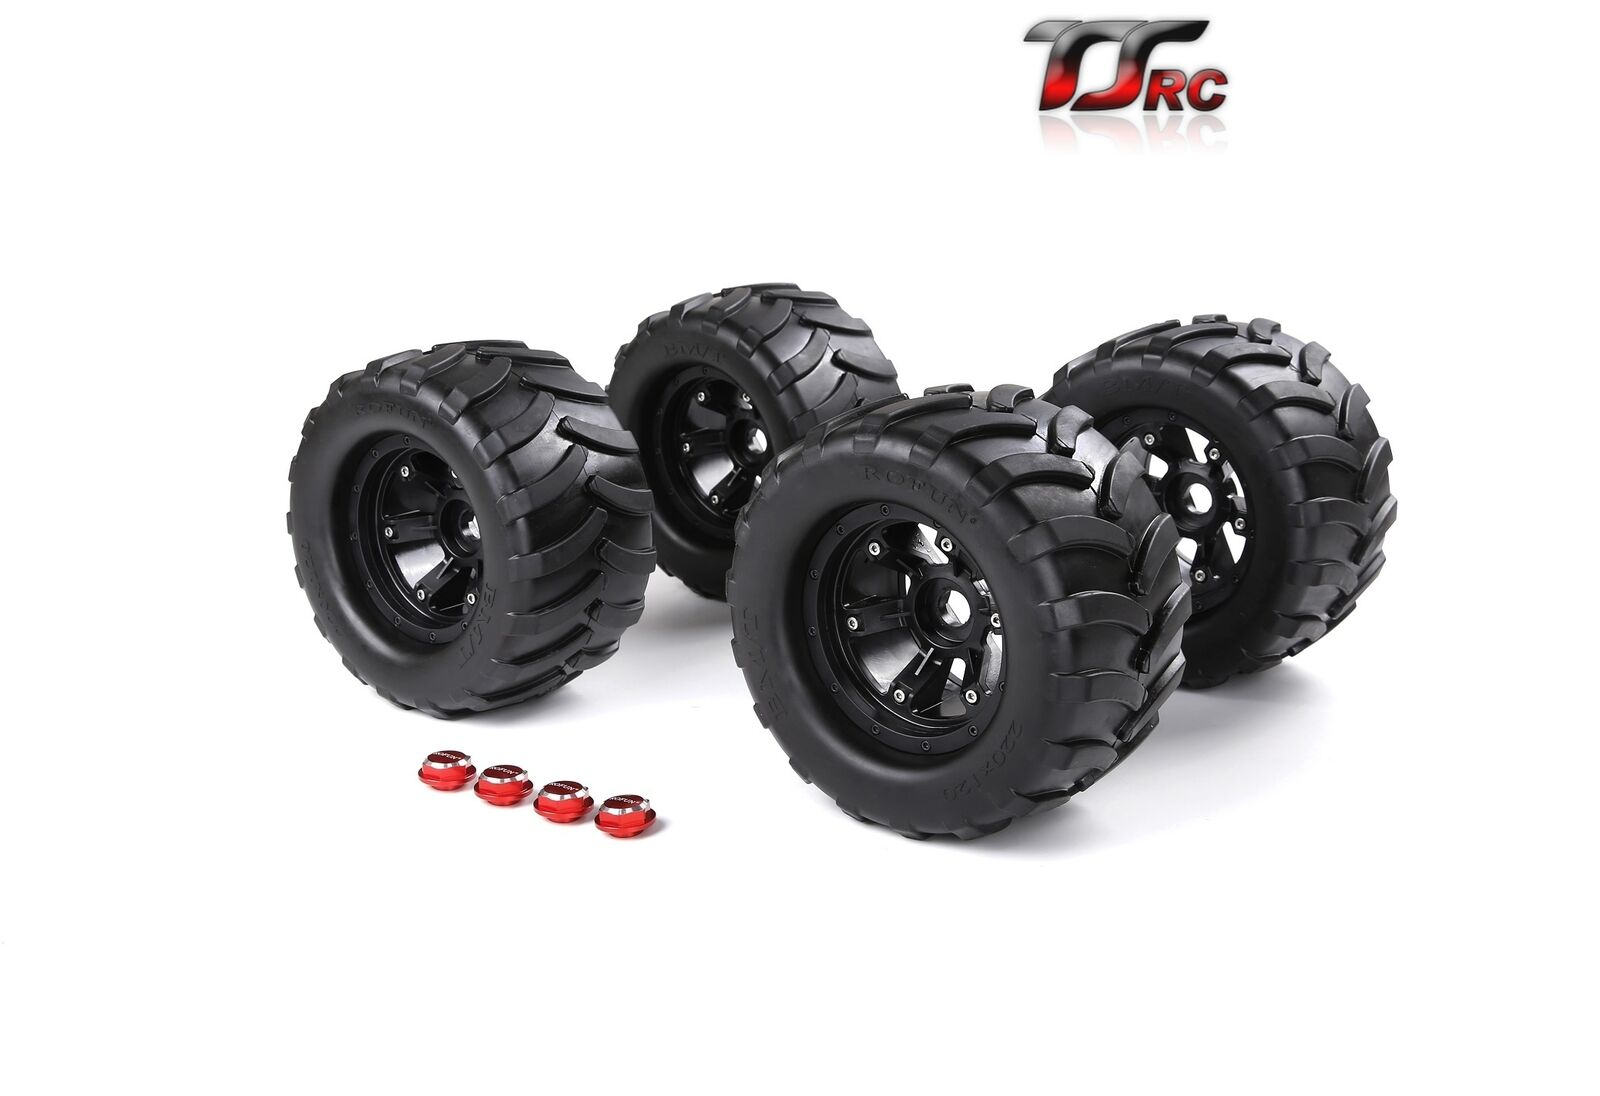 Wheel Tyre with Nut Completely Set 200*120mm for 1/5  Traxxas X-Maxx Truck Rc Car PartsWheel Tyre with Nut Completely Set 200*120mm for 1/5  Traxxas X-Maxx Truck Rc Car Parts